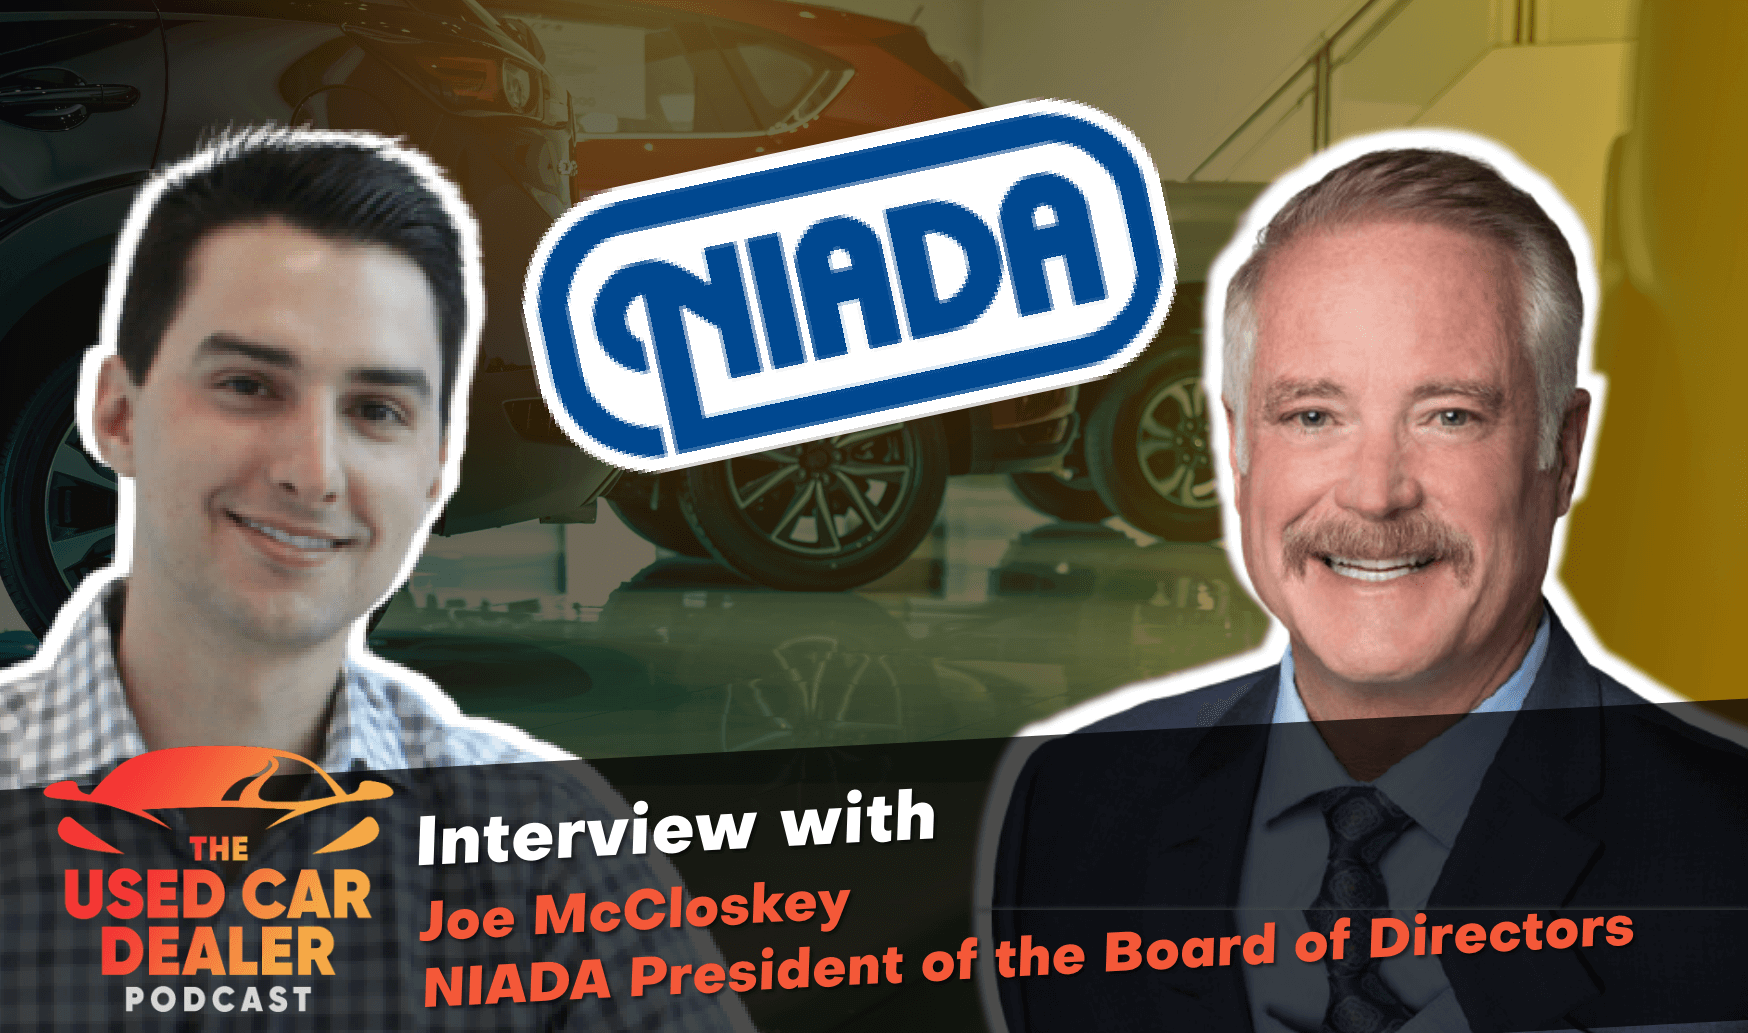 Interview with Joe McCloskey on 50 years in the used car business